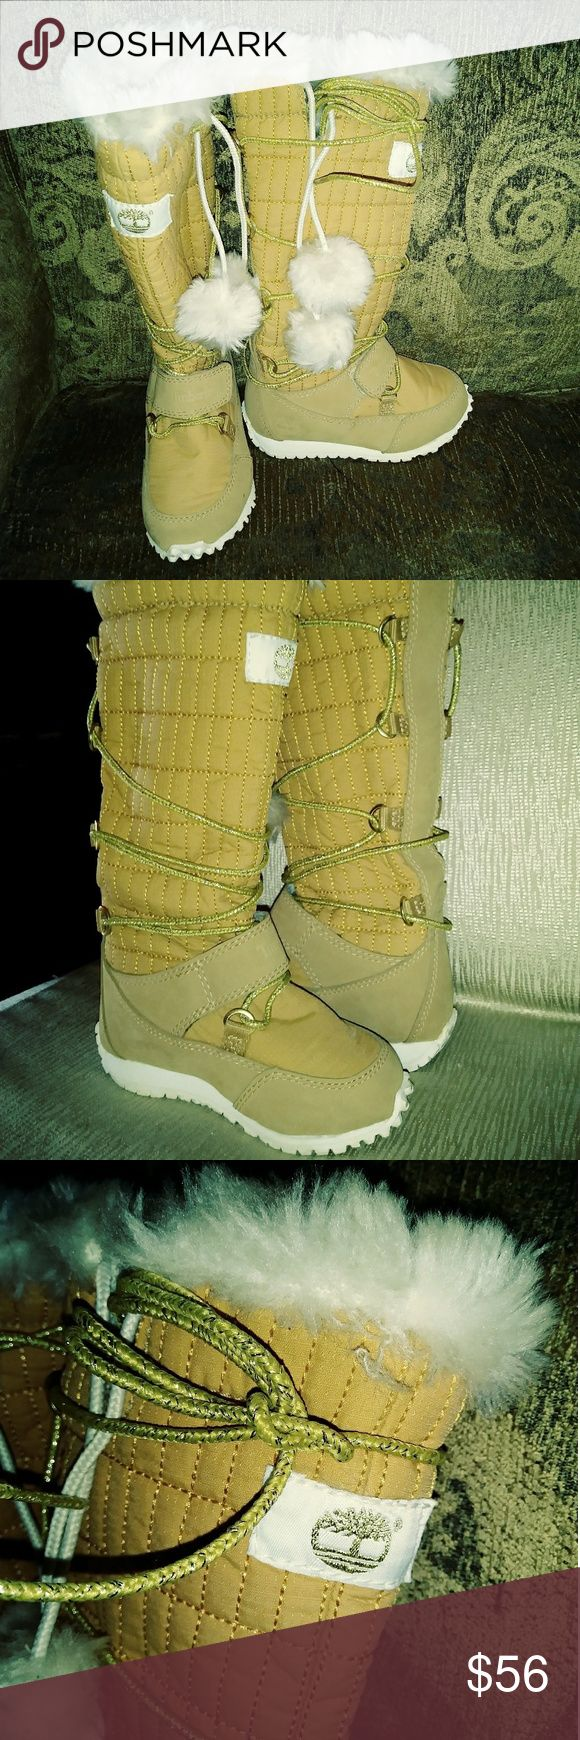 🔆Baby girl💰Timberland boots🔆 💰💰💰Great deal payed $156.00 my daughter never got to wear them💰💰💰💰High fashion timberland baby boots all leather with gold shoe strings..Velcro strap fuzzy inside lining so stinkin cute...NWOT..no box size toddler 6..🔆🔆🔆🔆🔆 there is one small ink mark not sure how that happened see last picture...could probably damp wipe... Timberland Shoes Boots